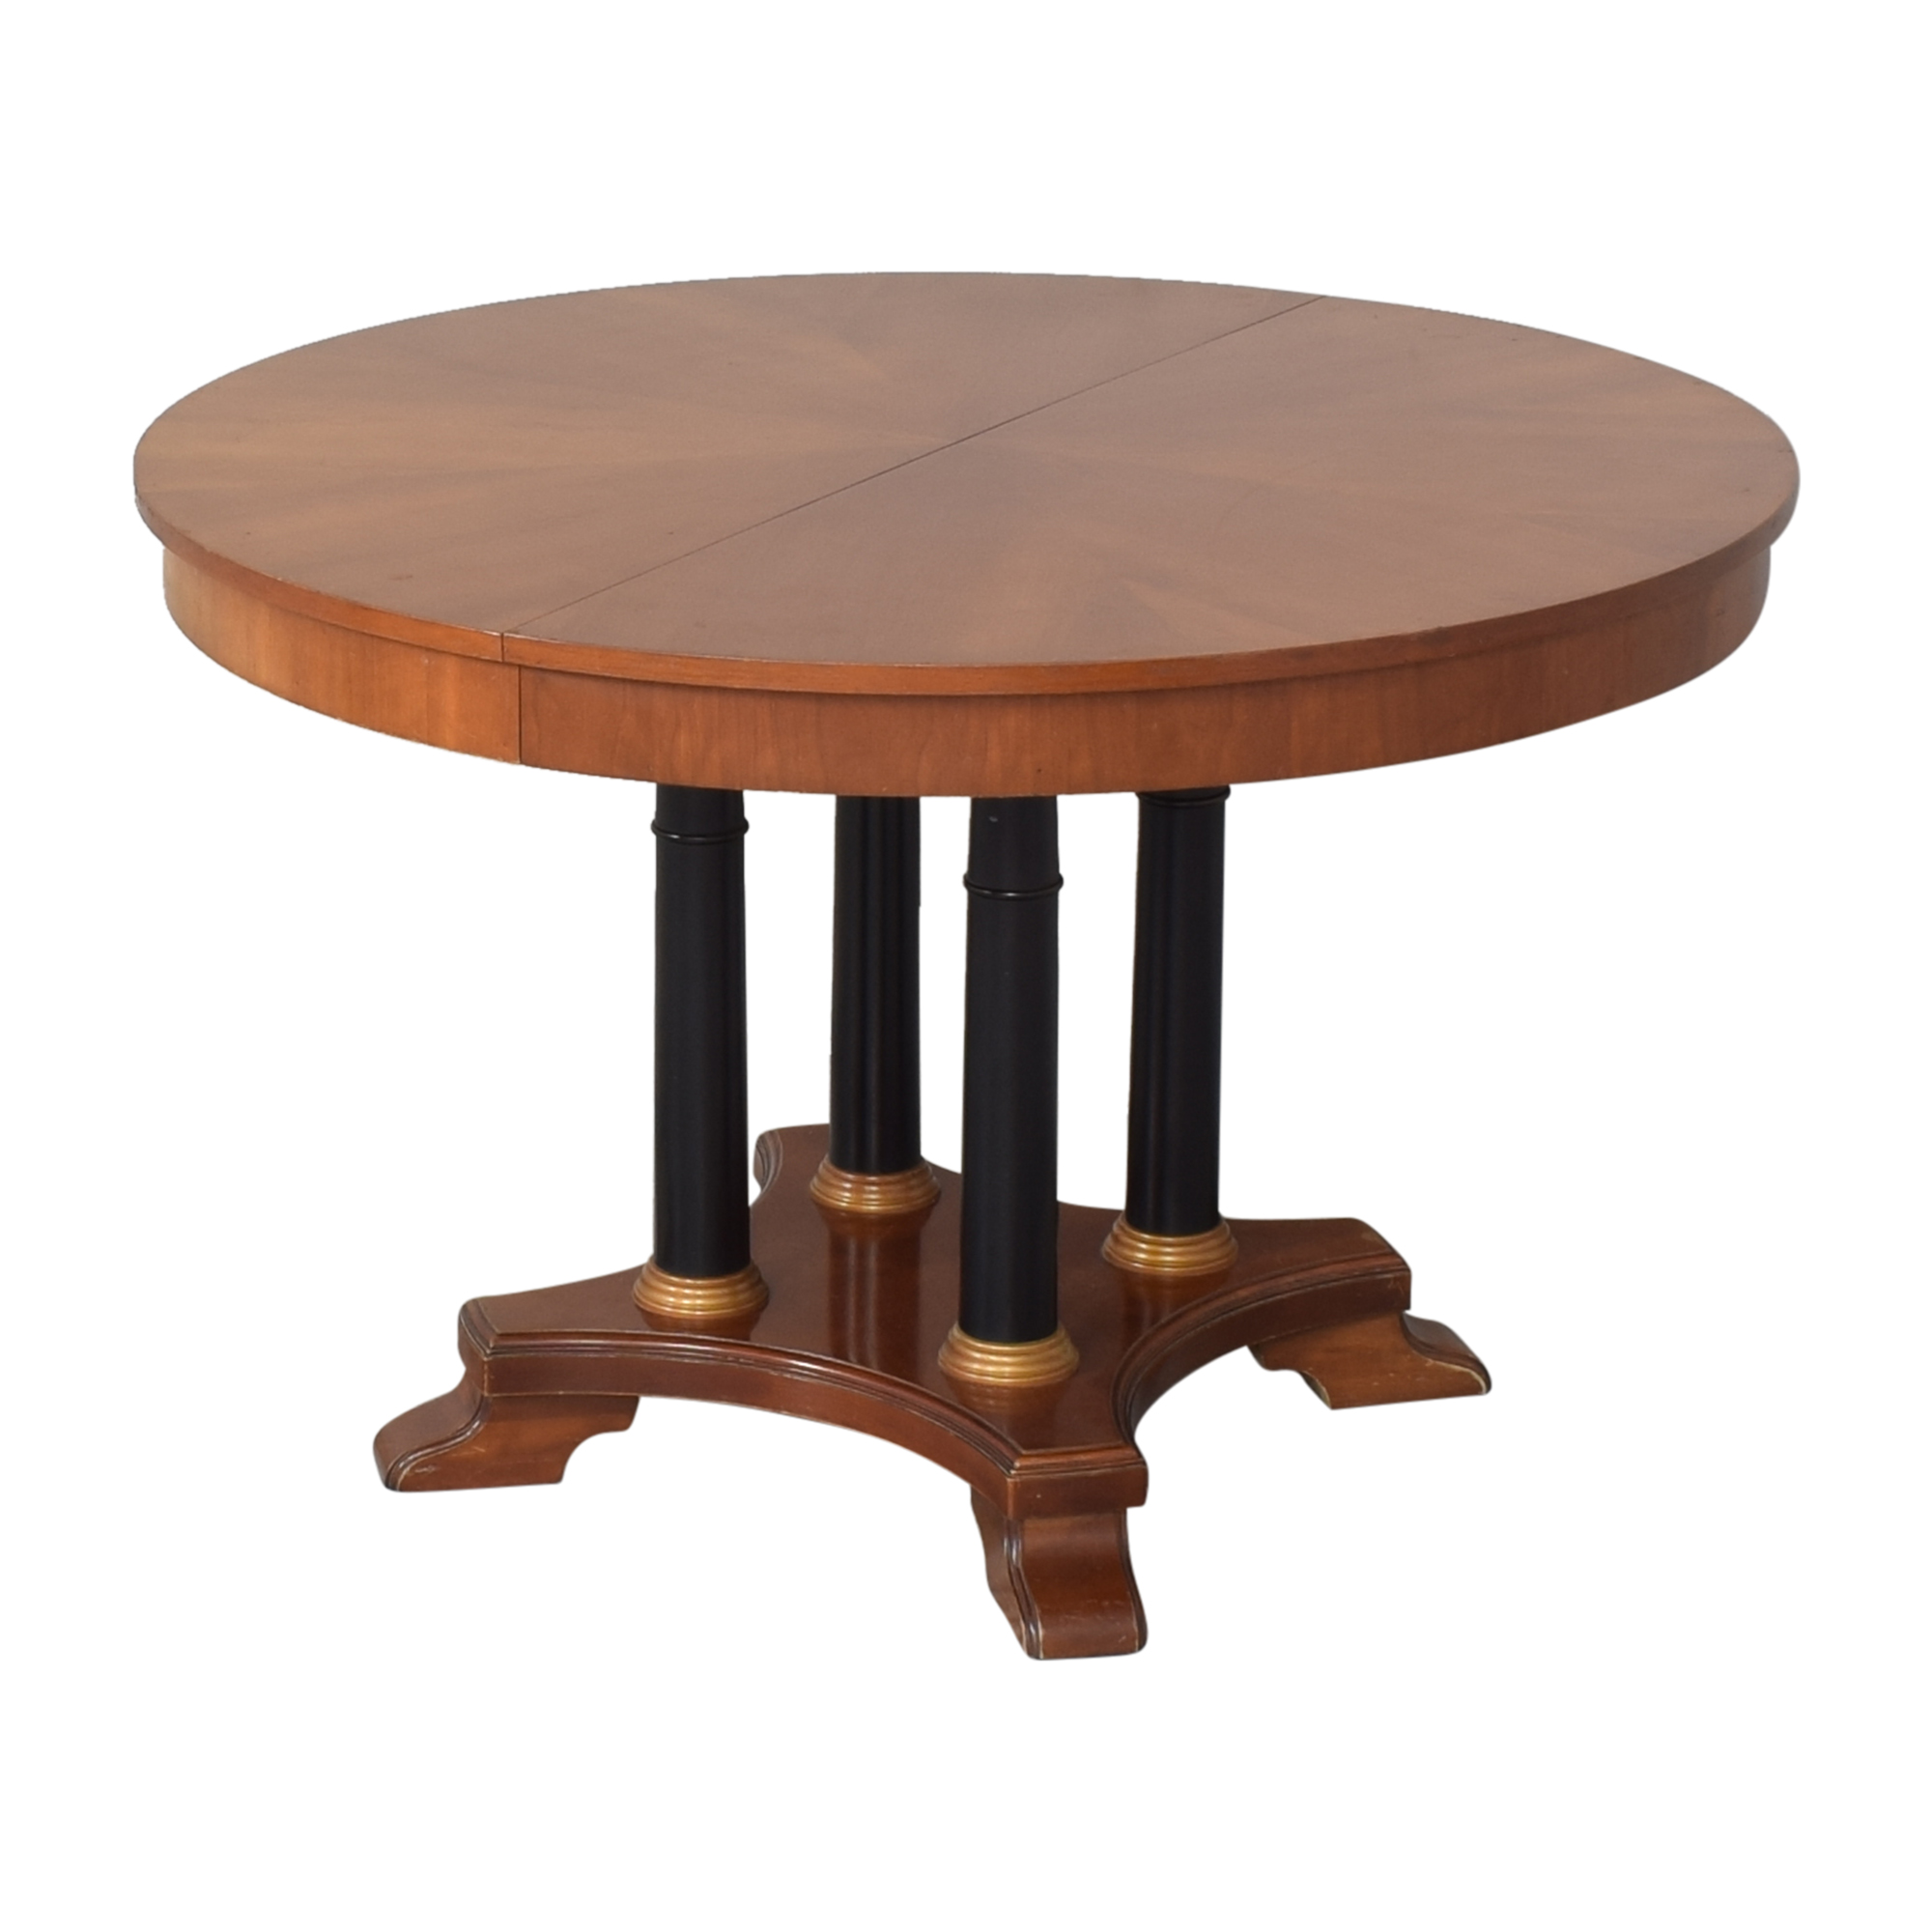 Ethan Allen Ethan Allen Medallion Collection Round Extendable Dining Table ct